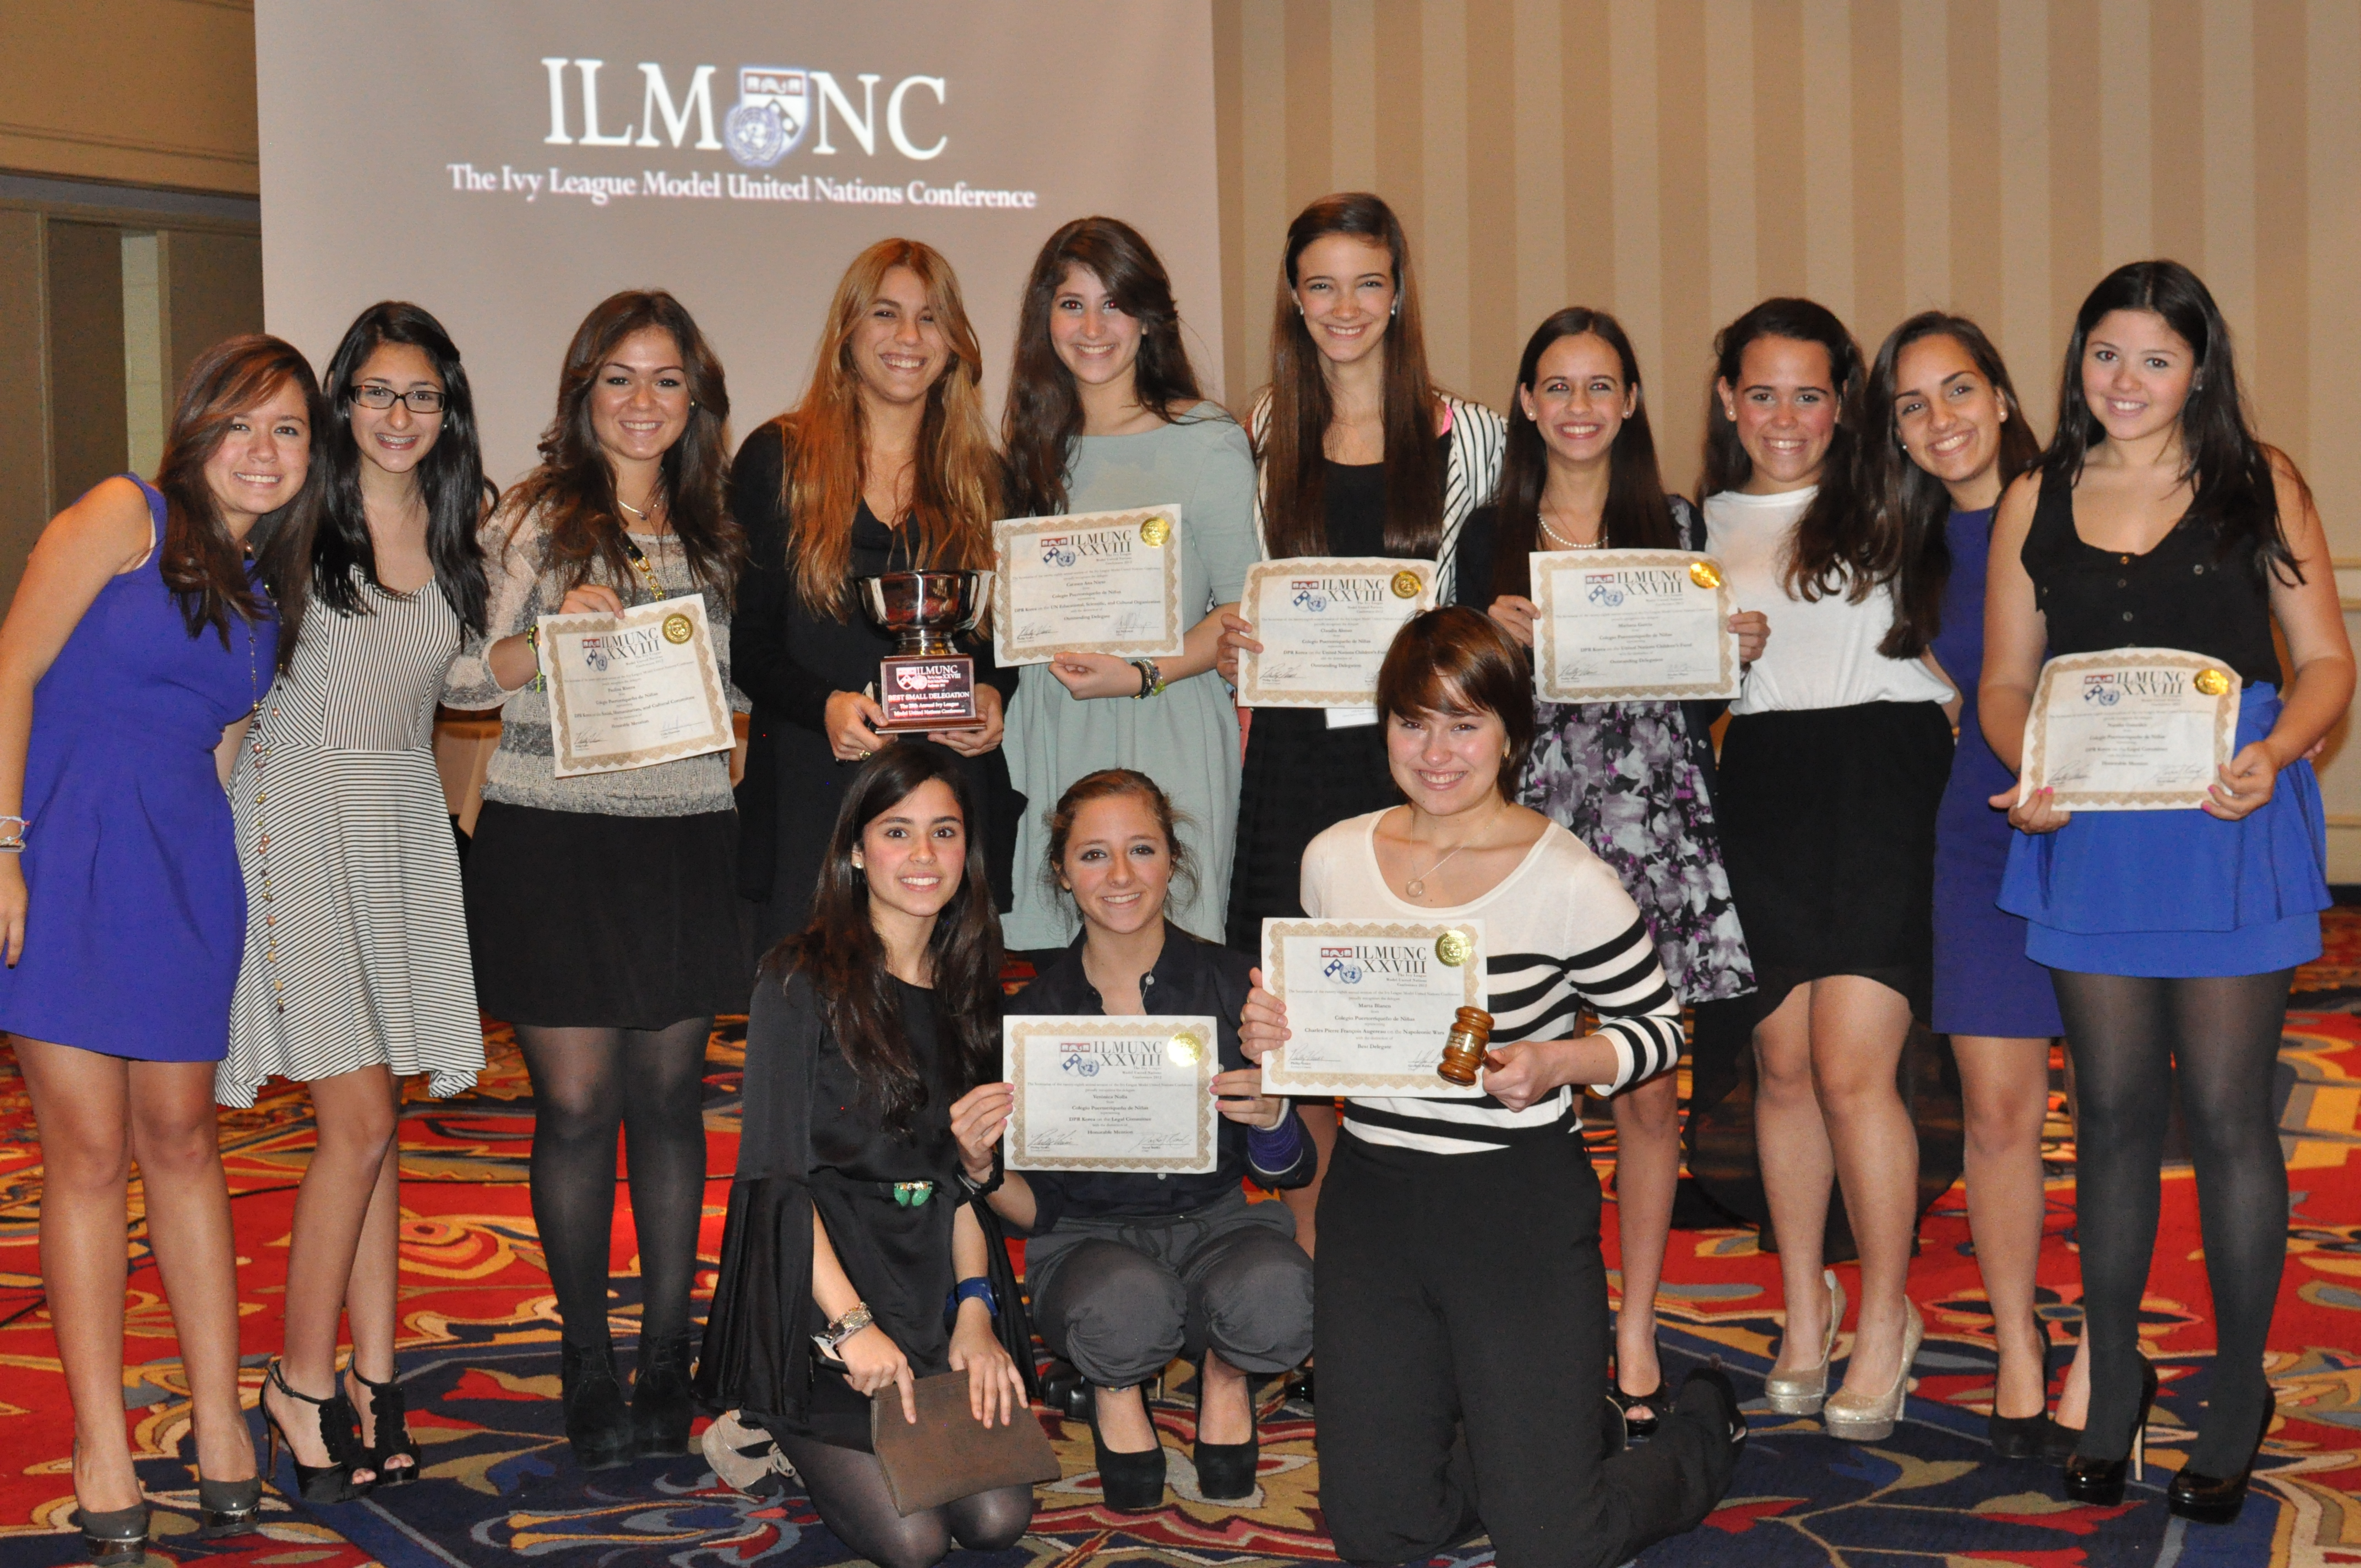 colegio de nias proudly holds up their best small delegation award at ilmunc